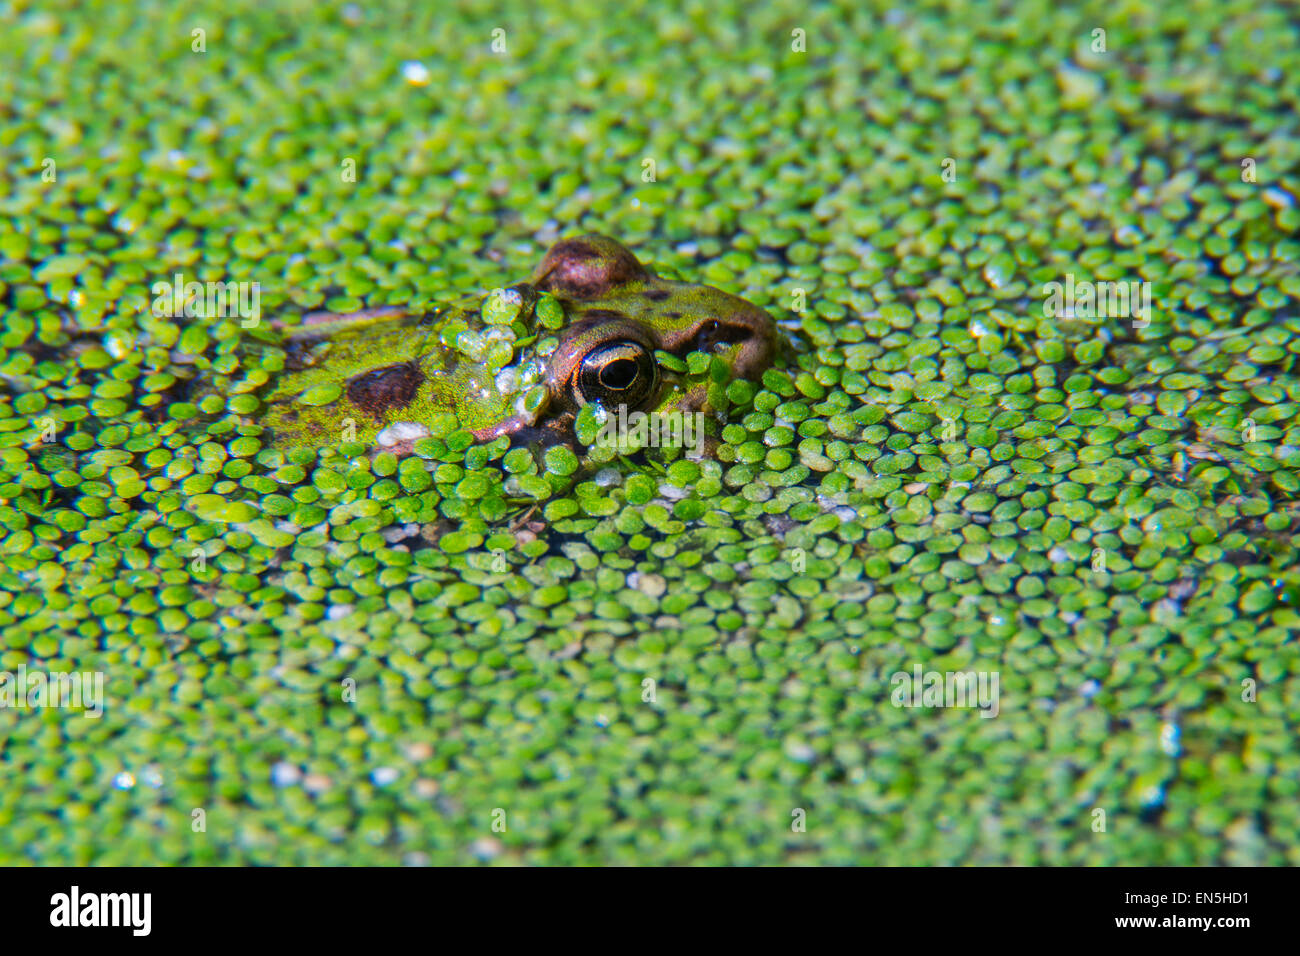 Edible frog (Pelophylax kl. esculentus / Rana kl. esculenta) covered in duckweed in pond - Stock Image